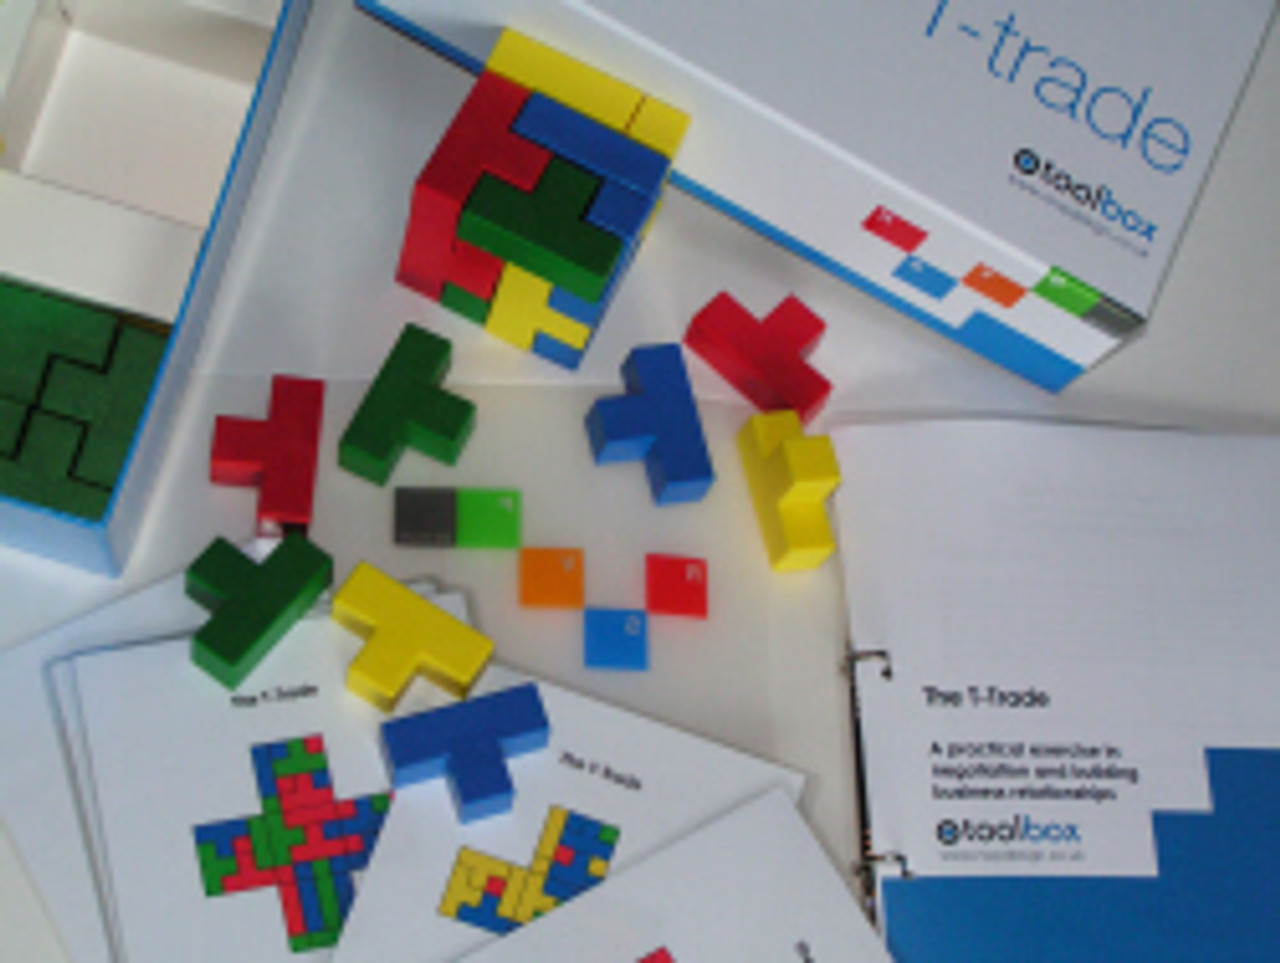 T-Trade Game for building negotiation skills